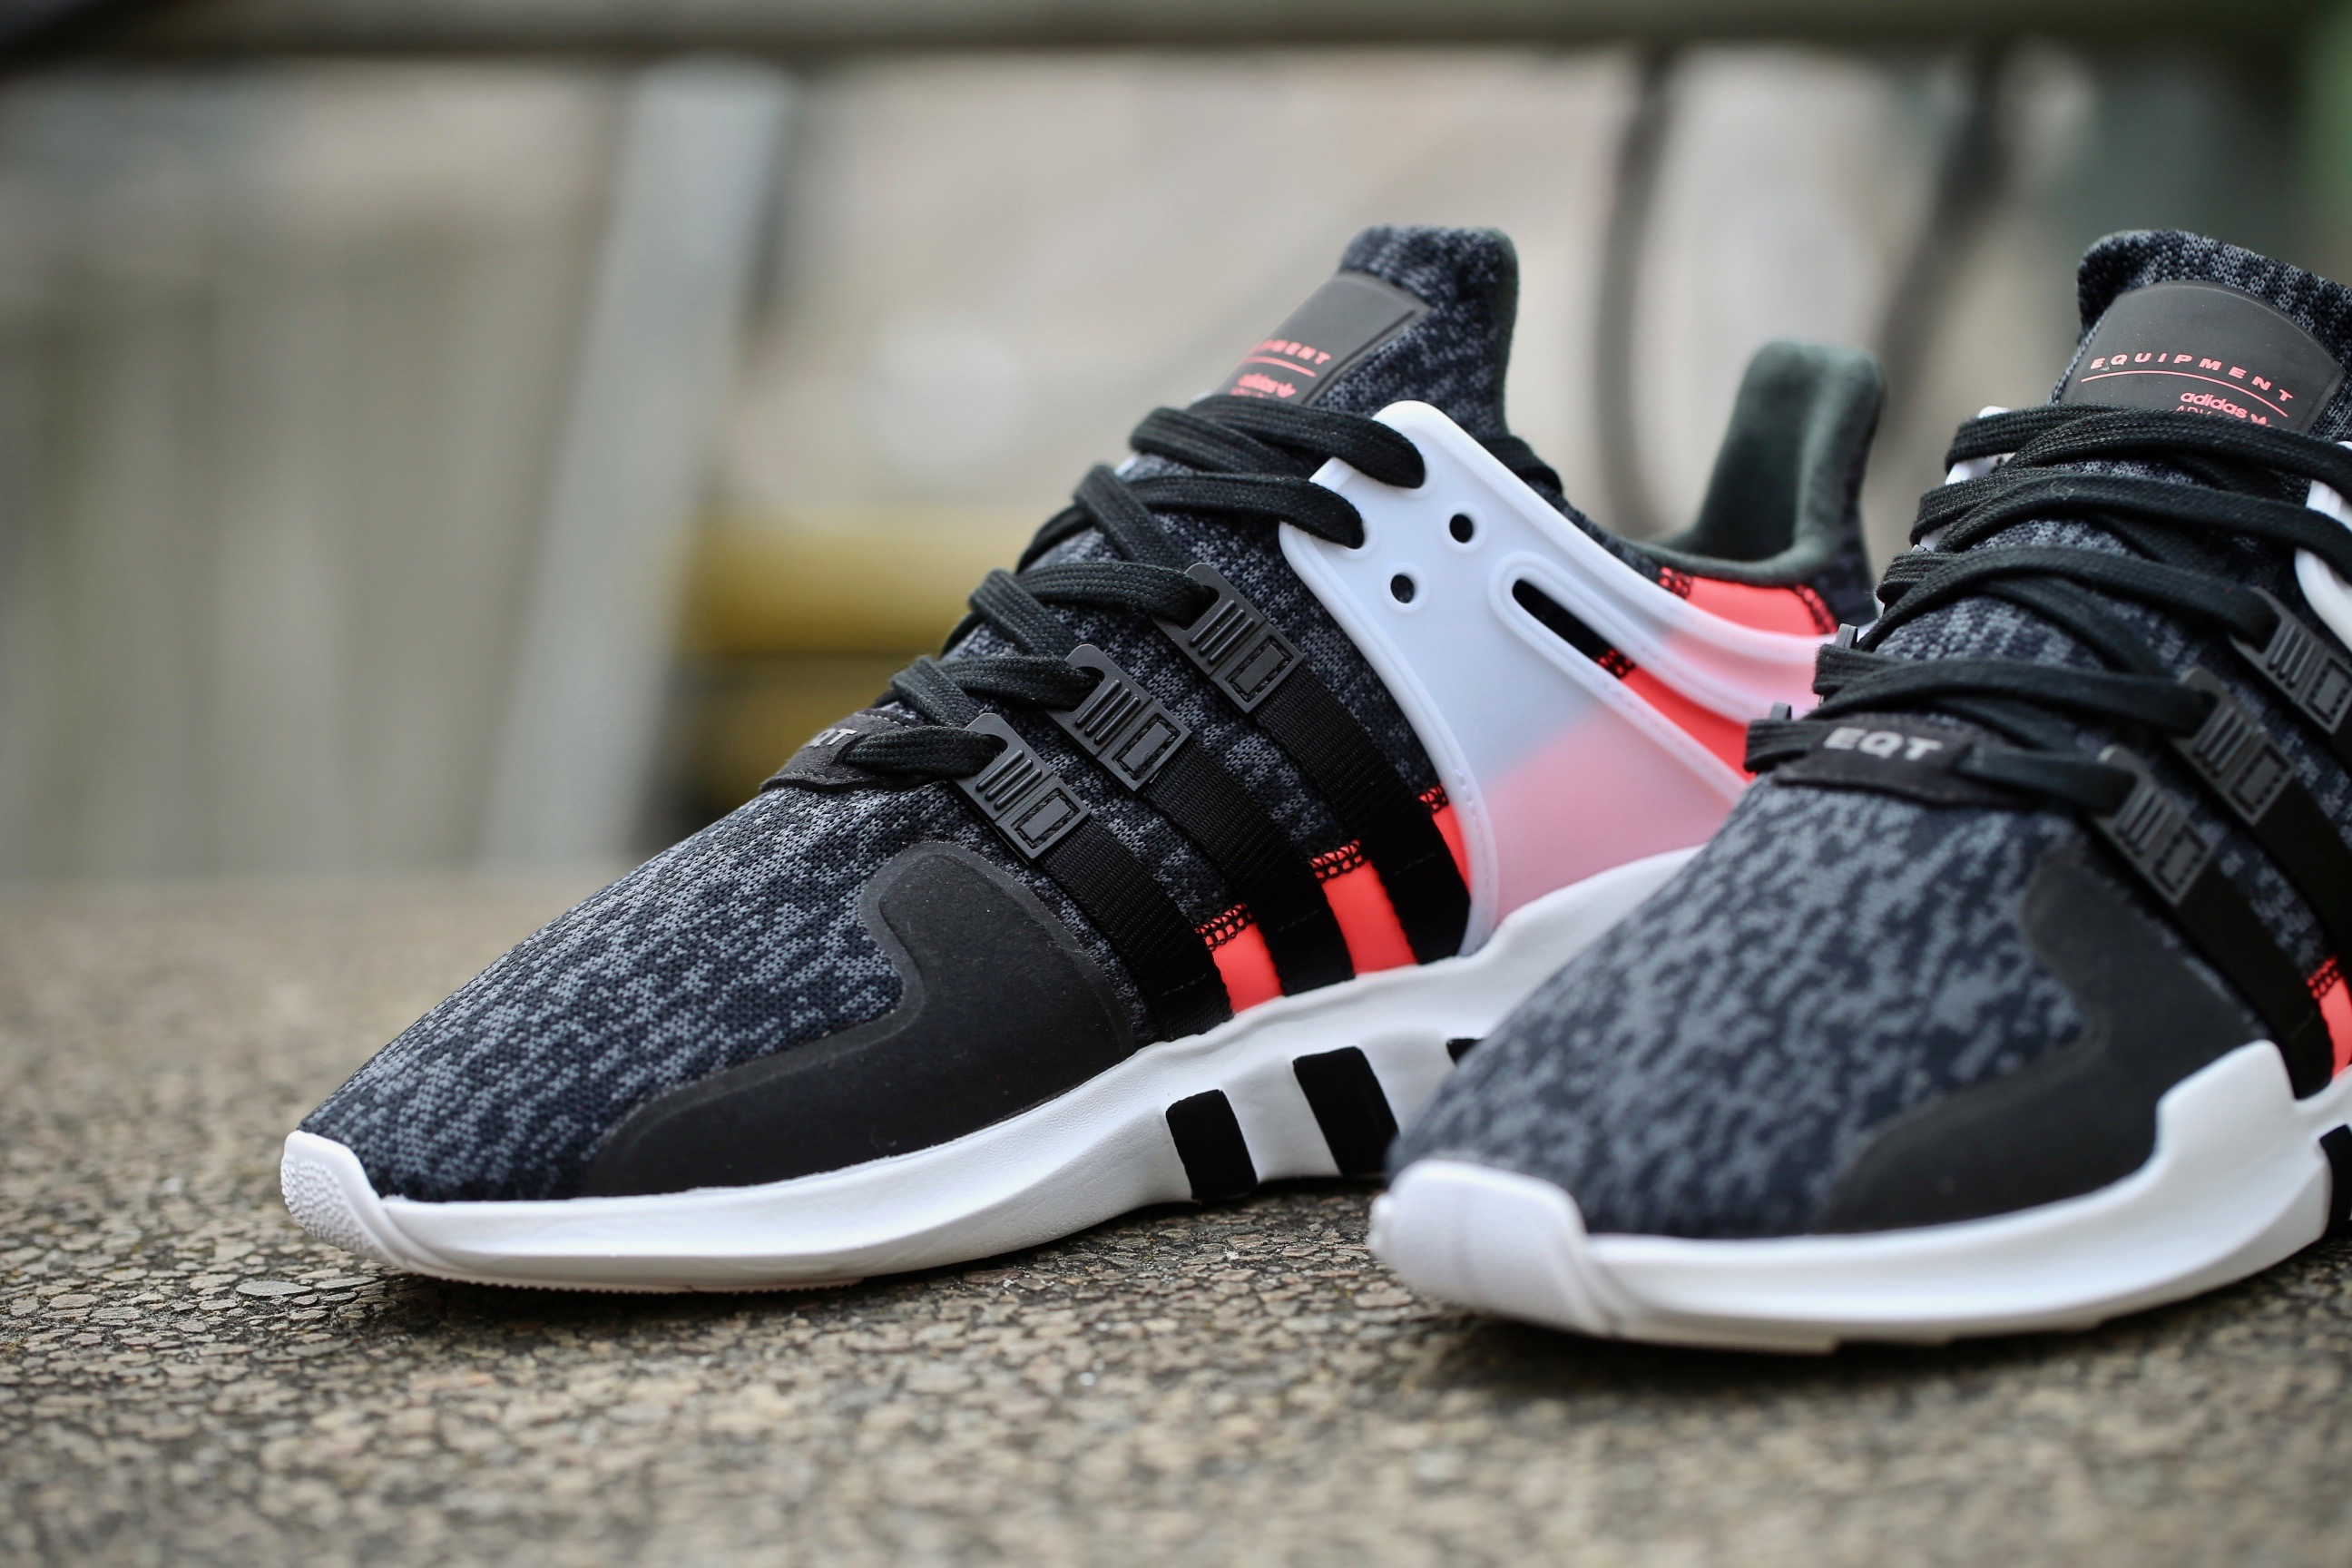 adidas originals EQT Support ADV Men's Running Shoes Core